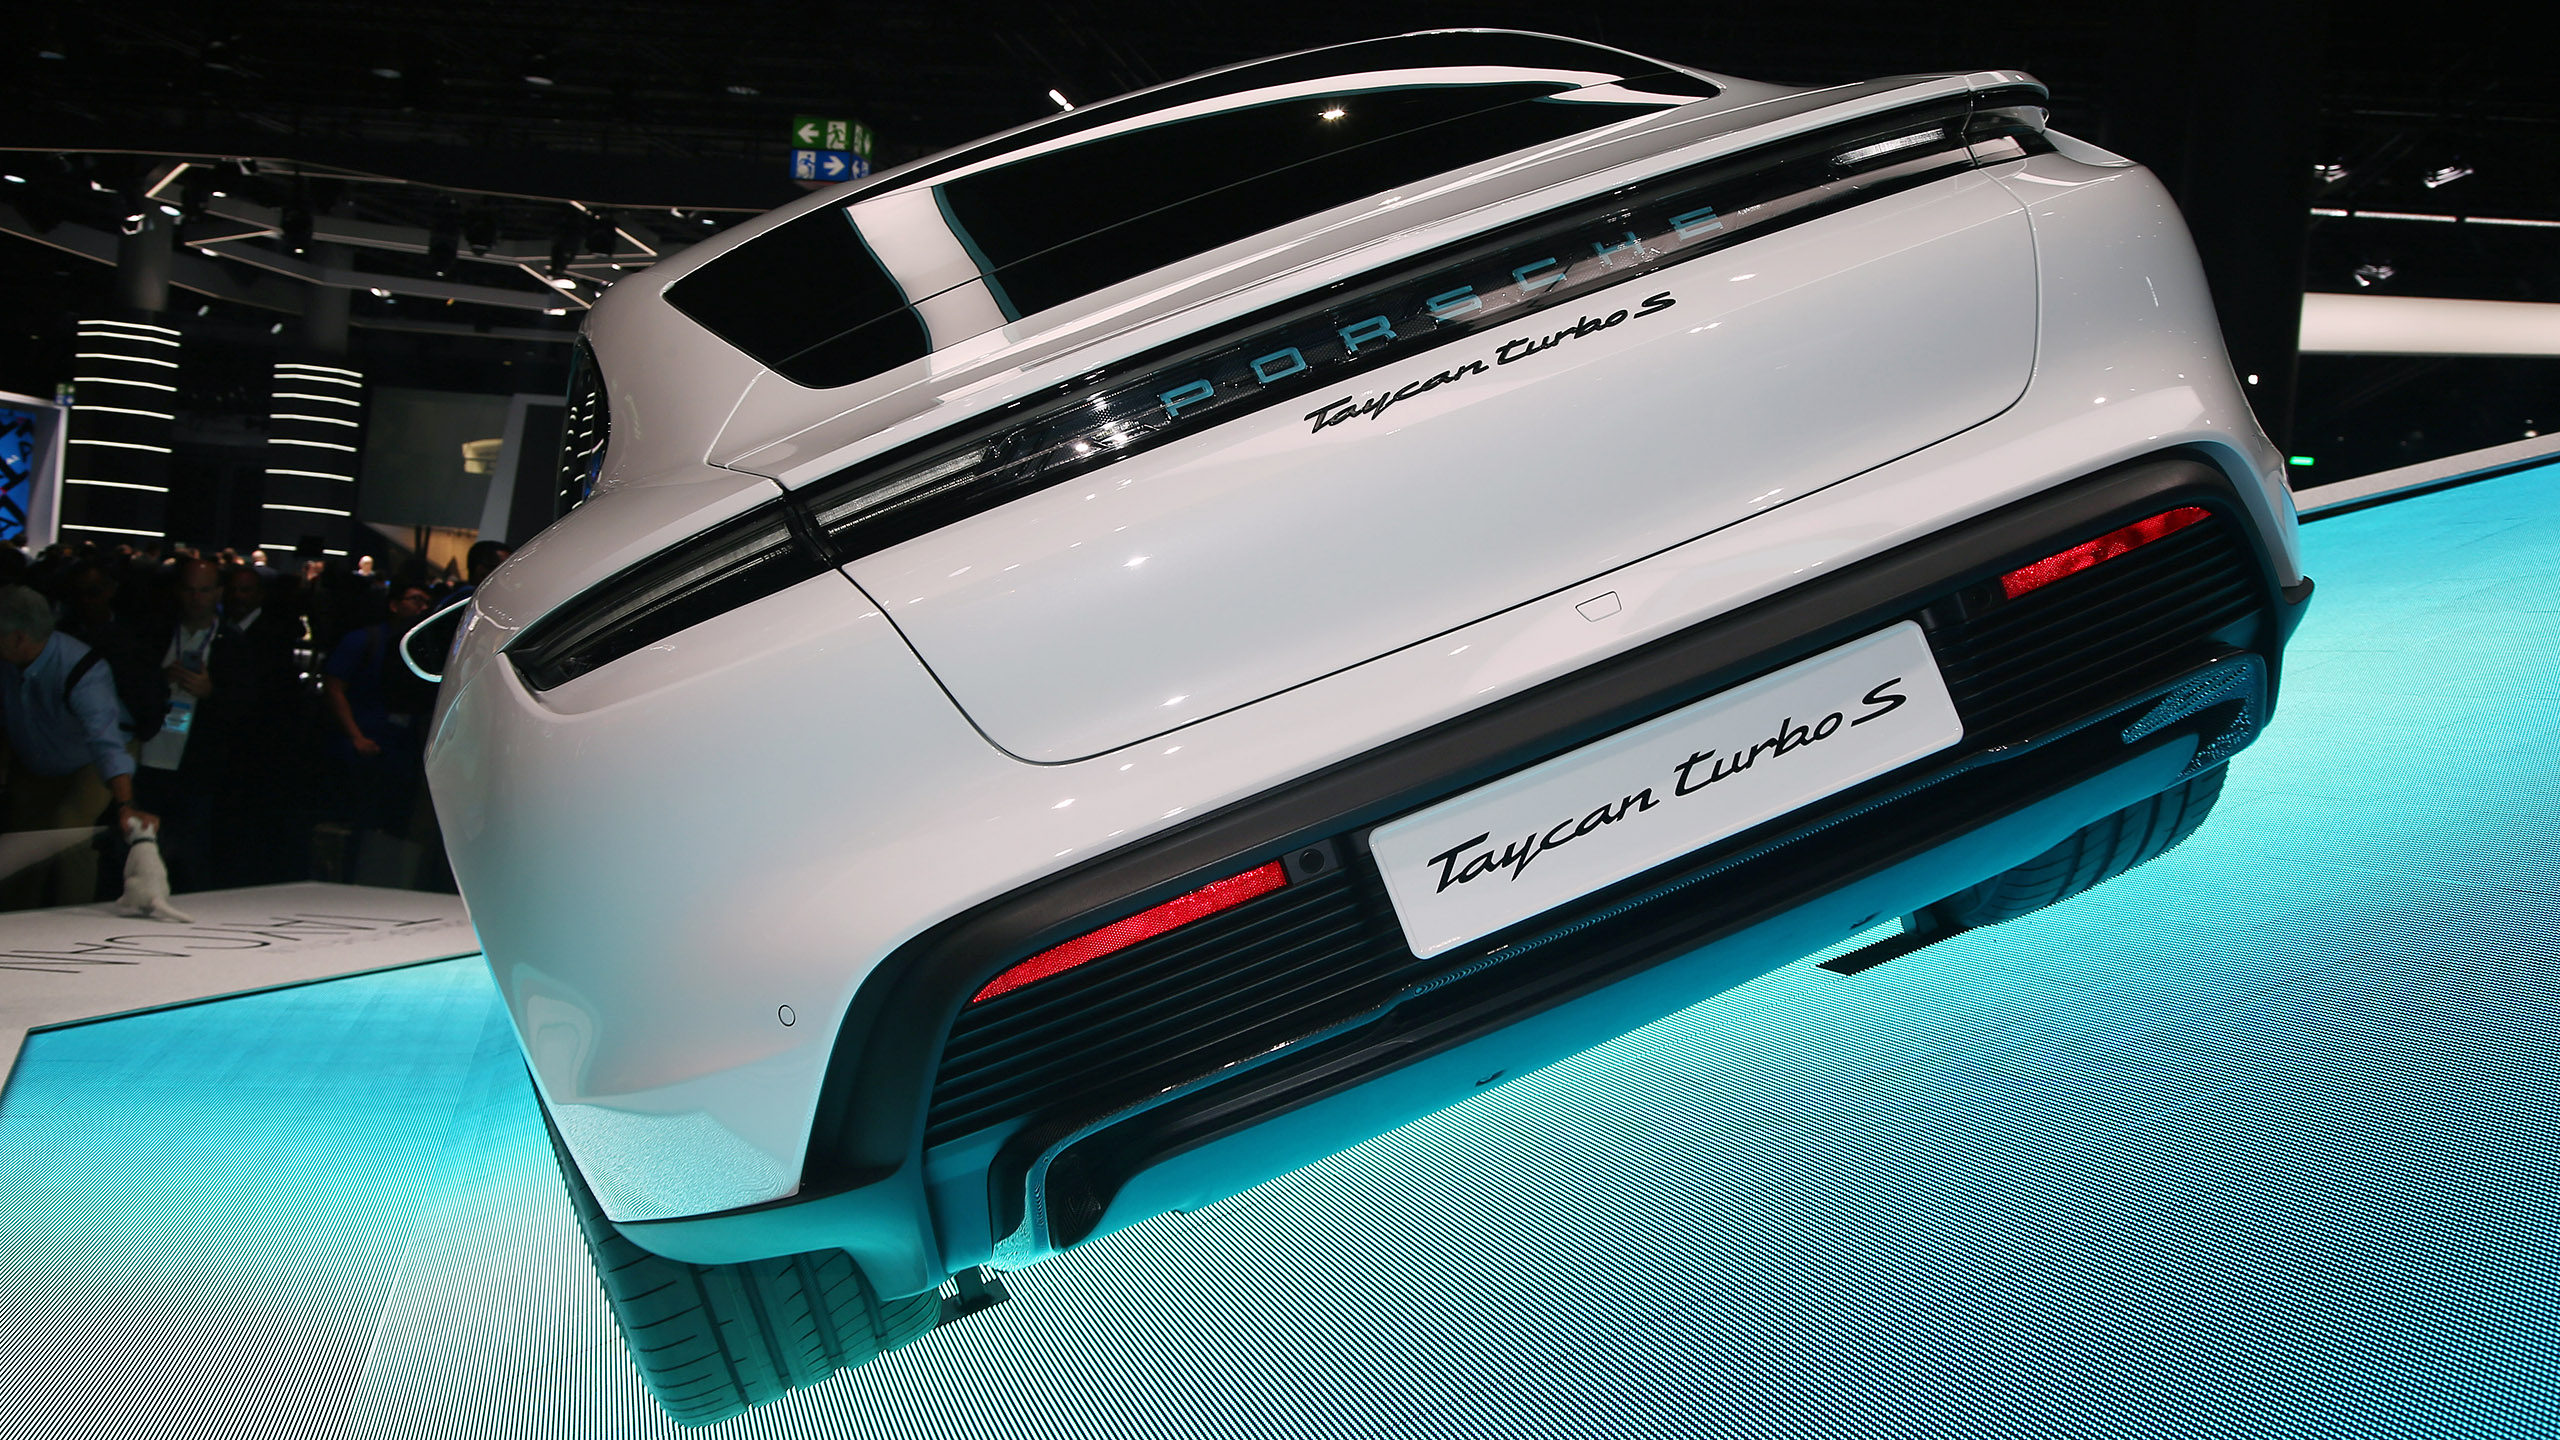 2020 Porsche Taycan: Frankfurt 2019 Photo Gallery